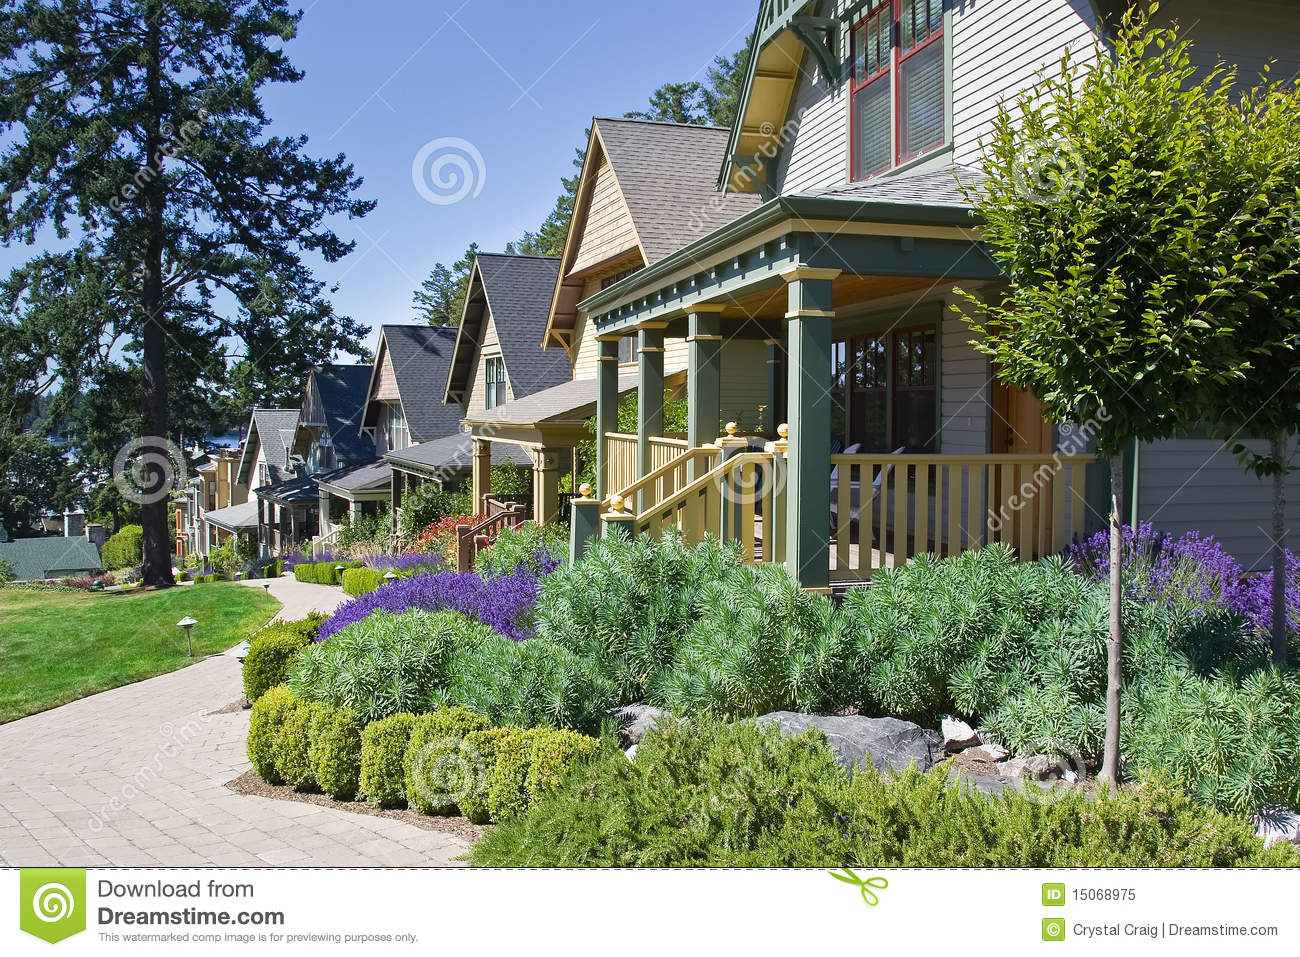 Swell Craftsman Style Cottage Homes Royalty Free Stock Photo Image Largest Home Design Picture Inspirations Pitcheantrous